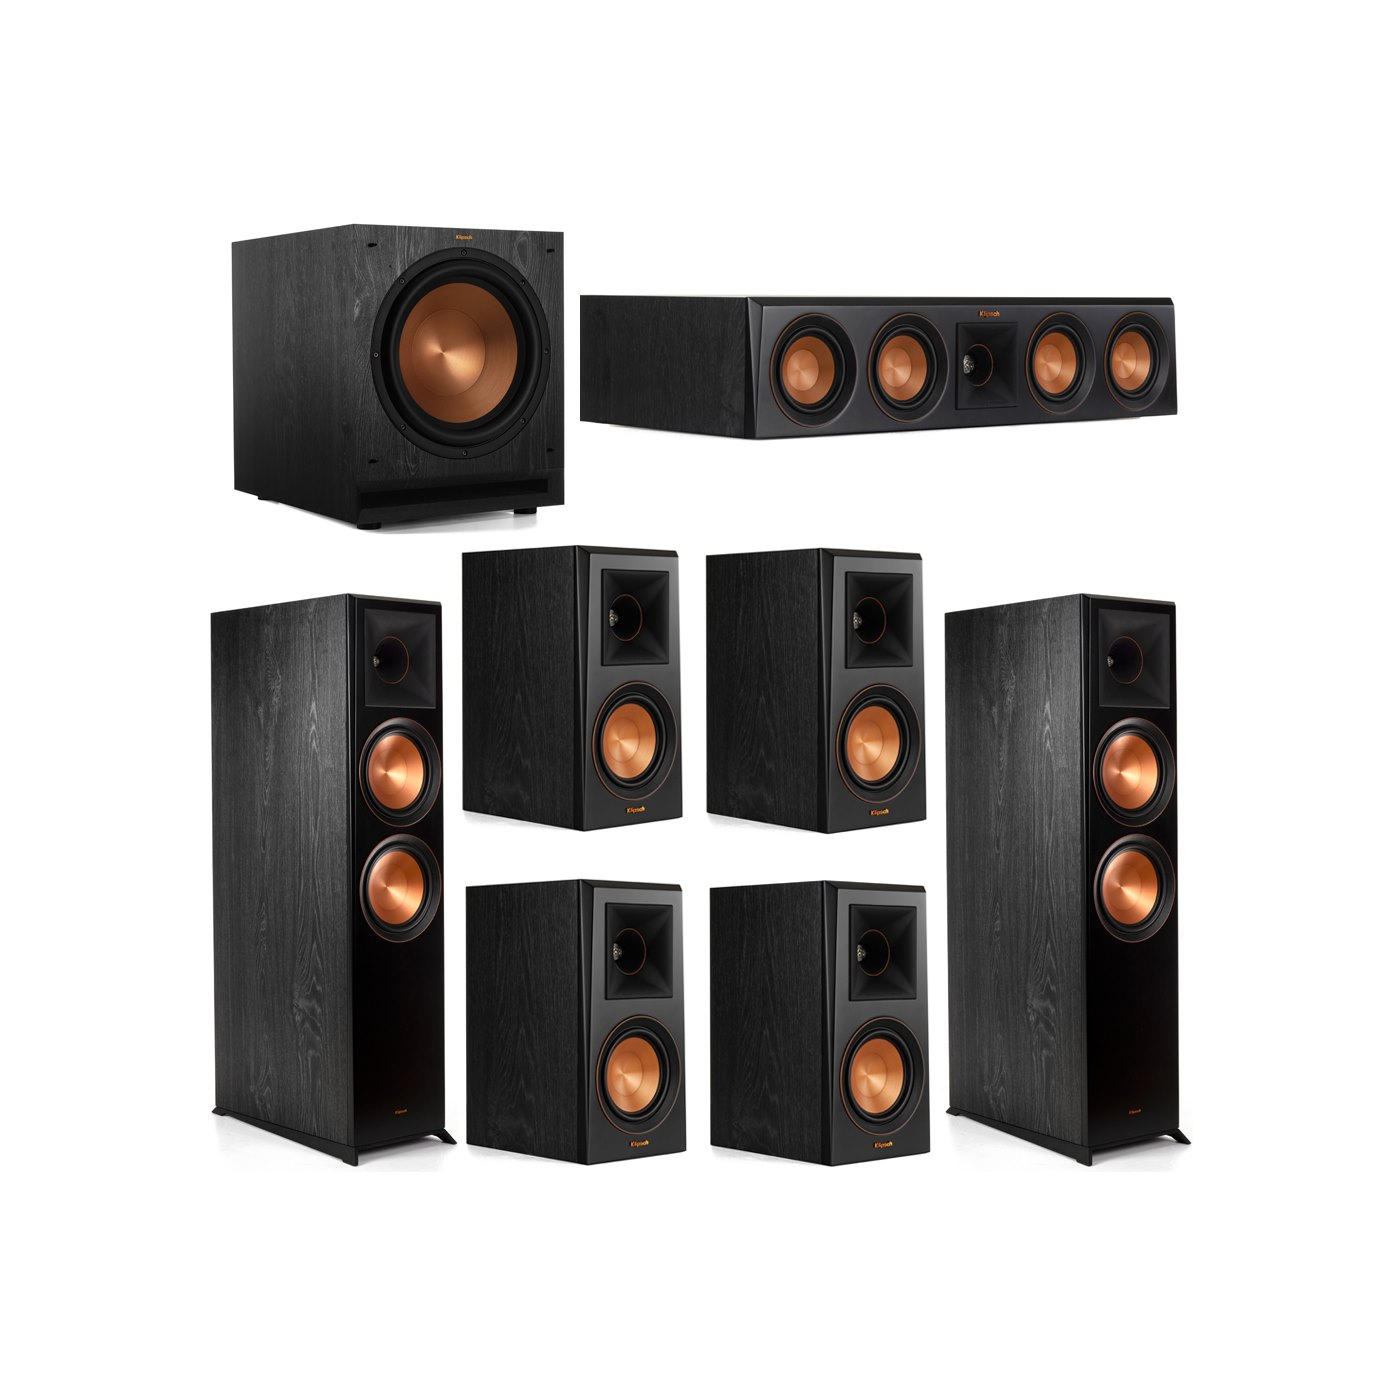 Klipsch 7.1 System with 2 RP-8000F Floorstanding Speakers, 1 Klipsch RP-404C Center Speaker, 4 Klipsch RP-500M Surround Speakers, 1 Klipsch SPL-120 Subwoofer